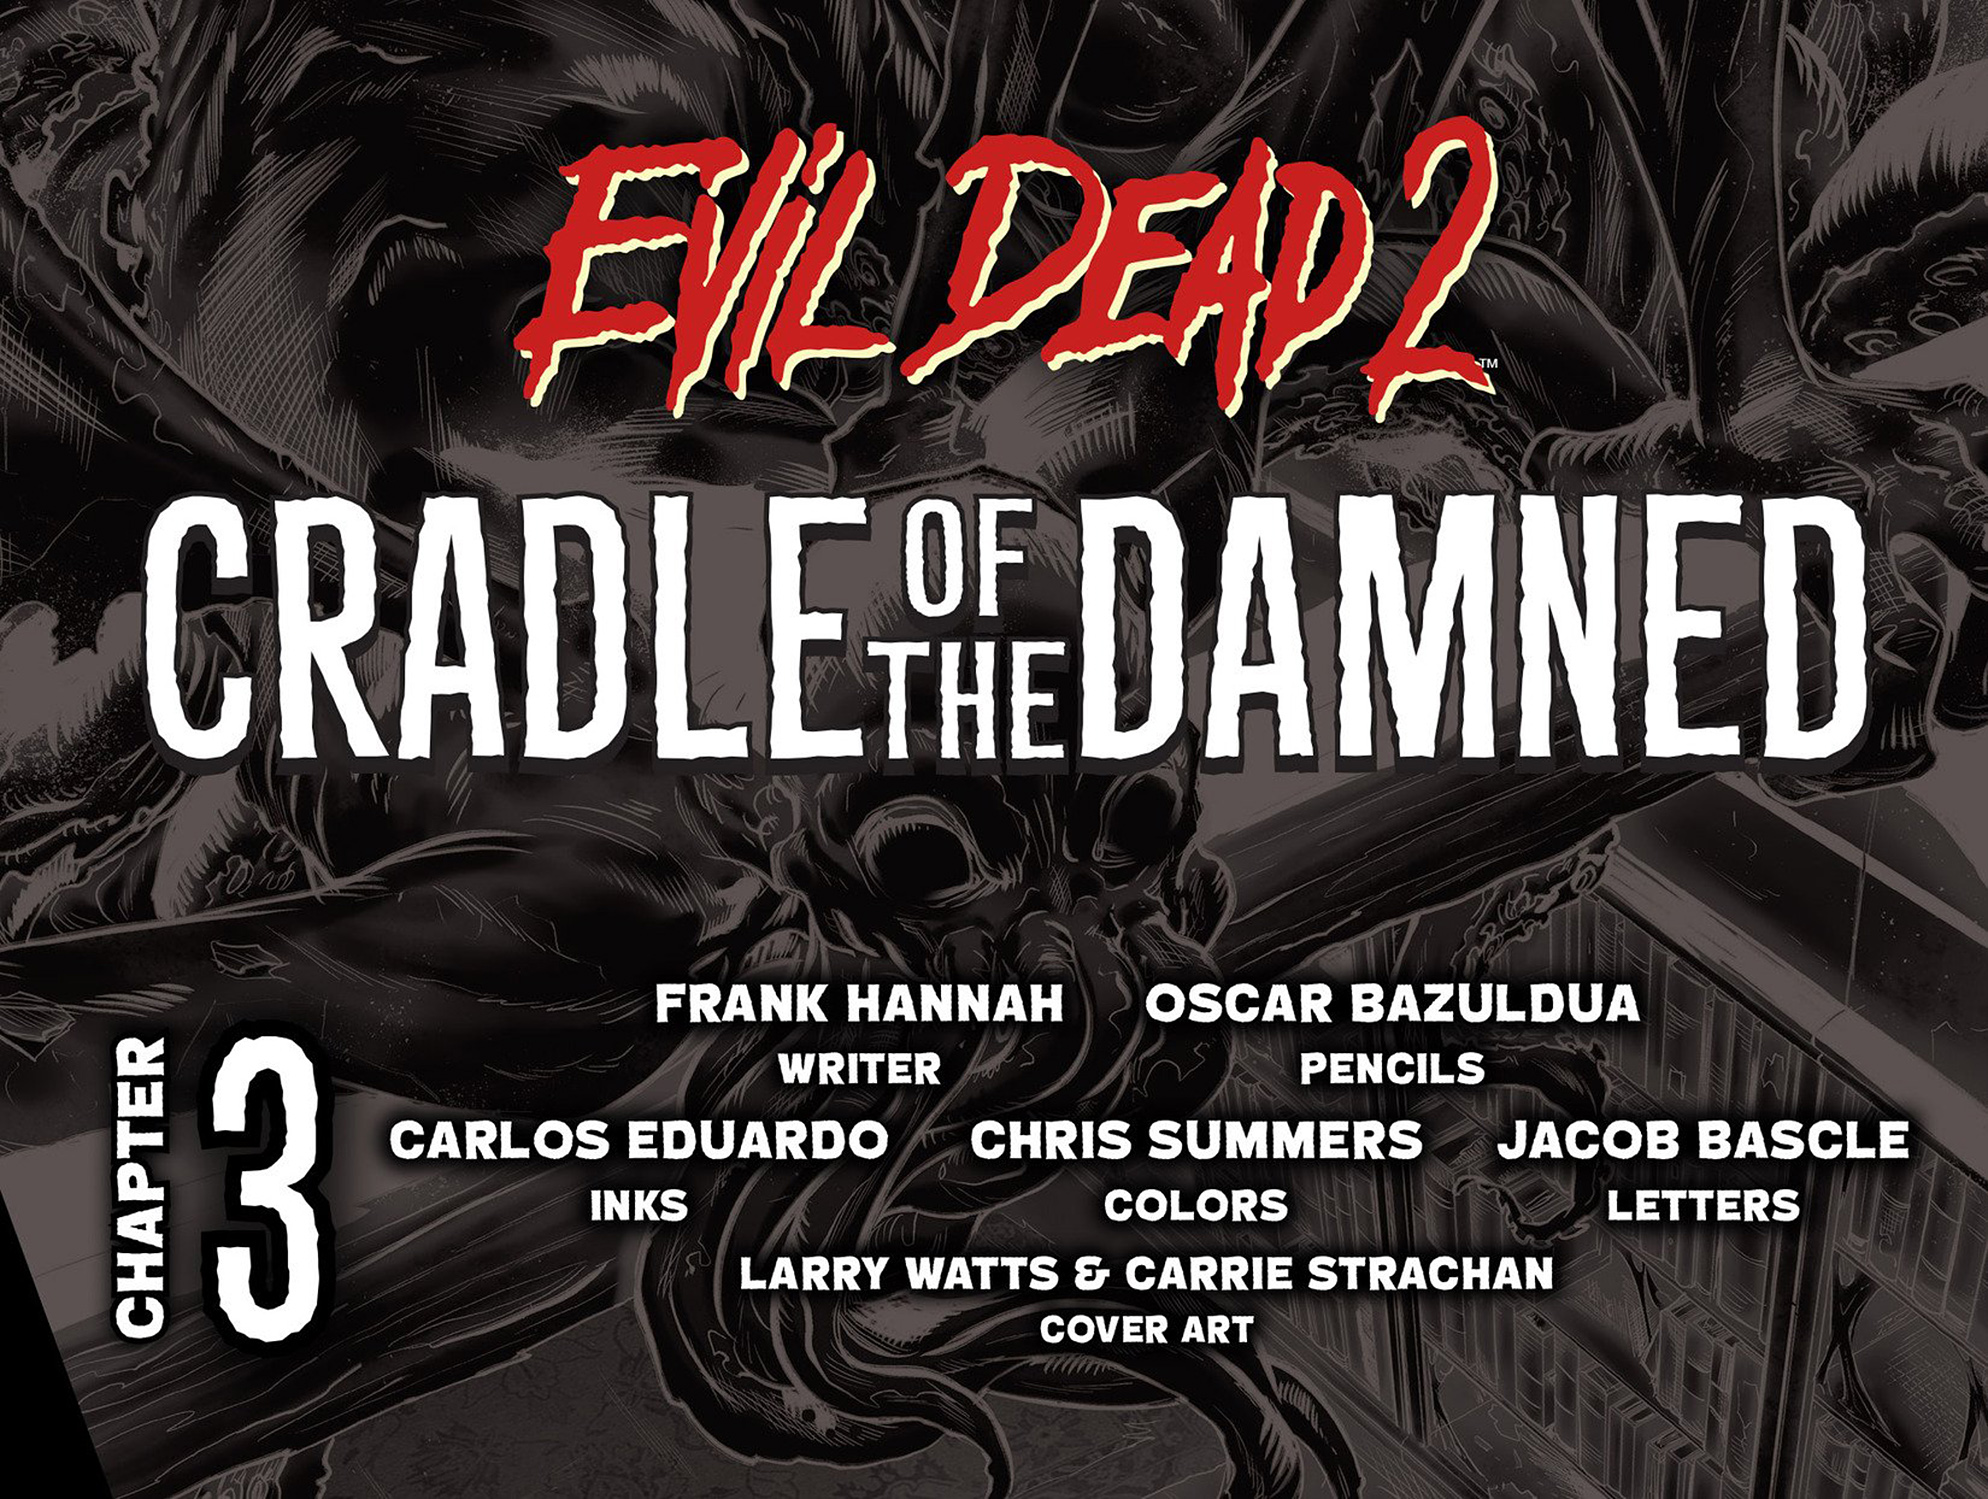 Read online Evil Dead 2: Cradle of the Damned comic -  Issue #3 - 2